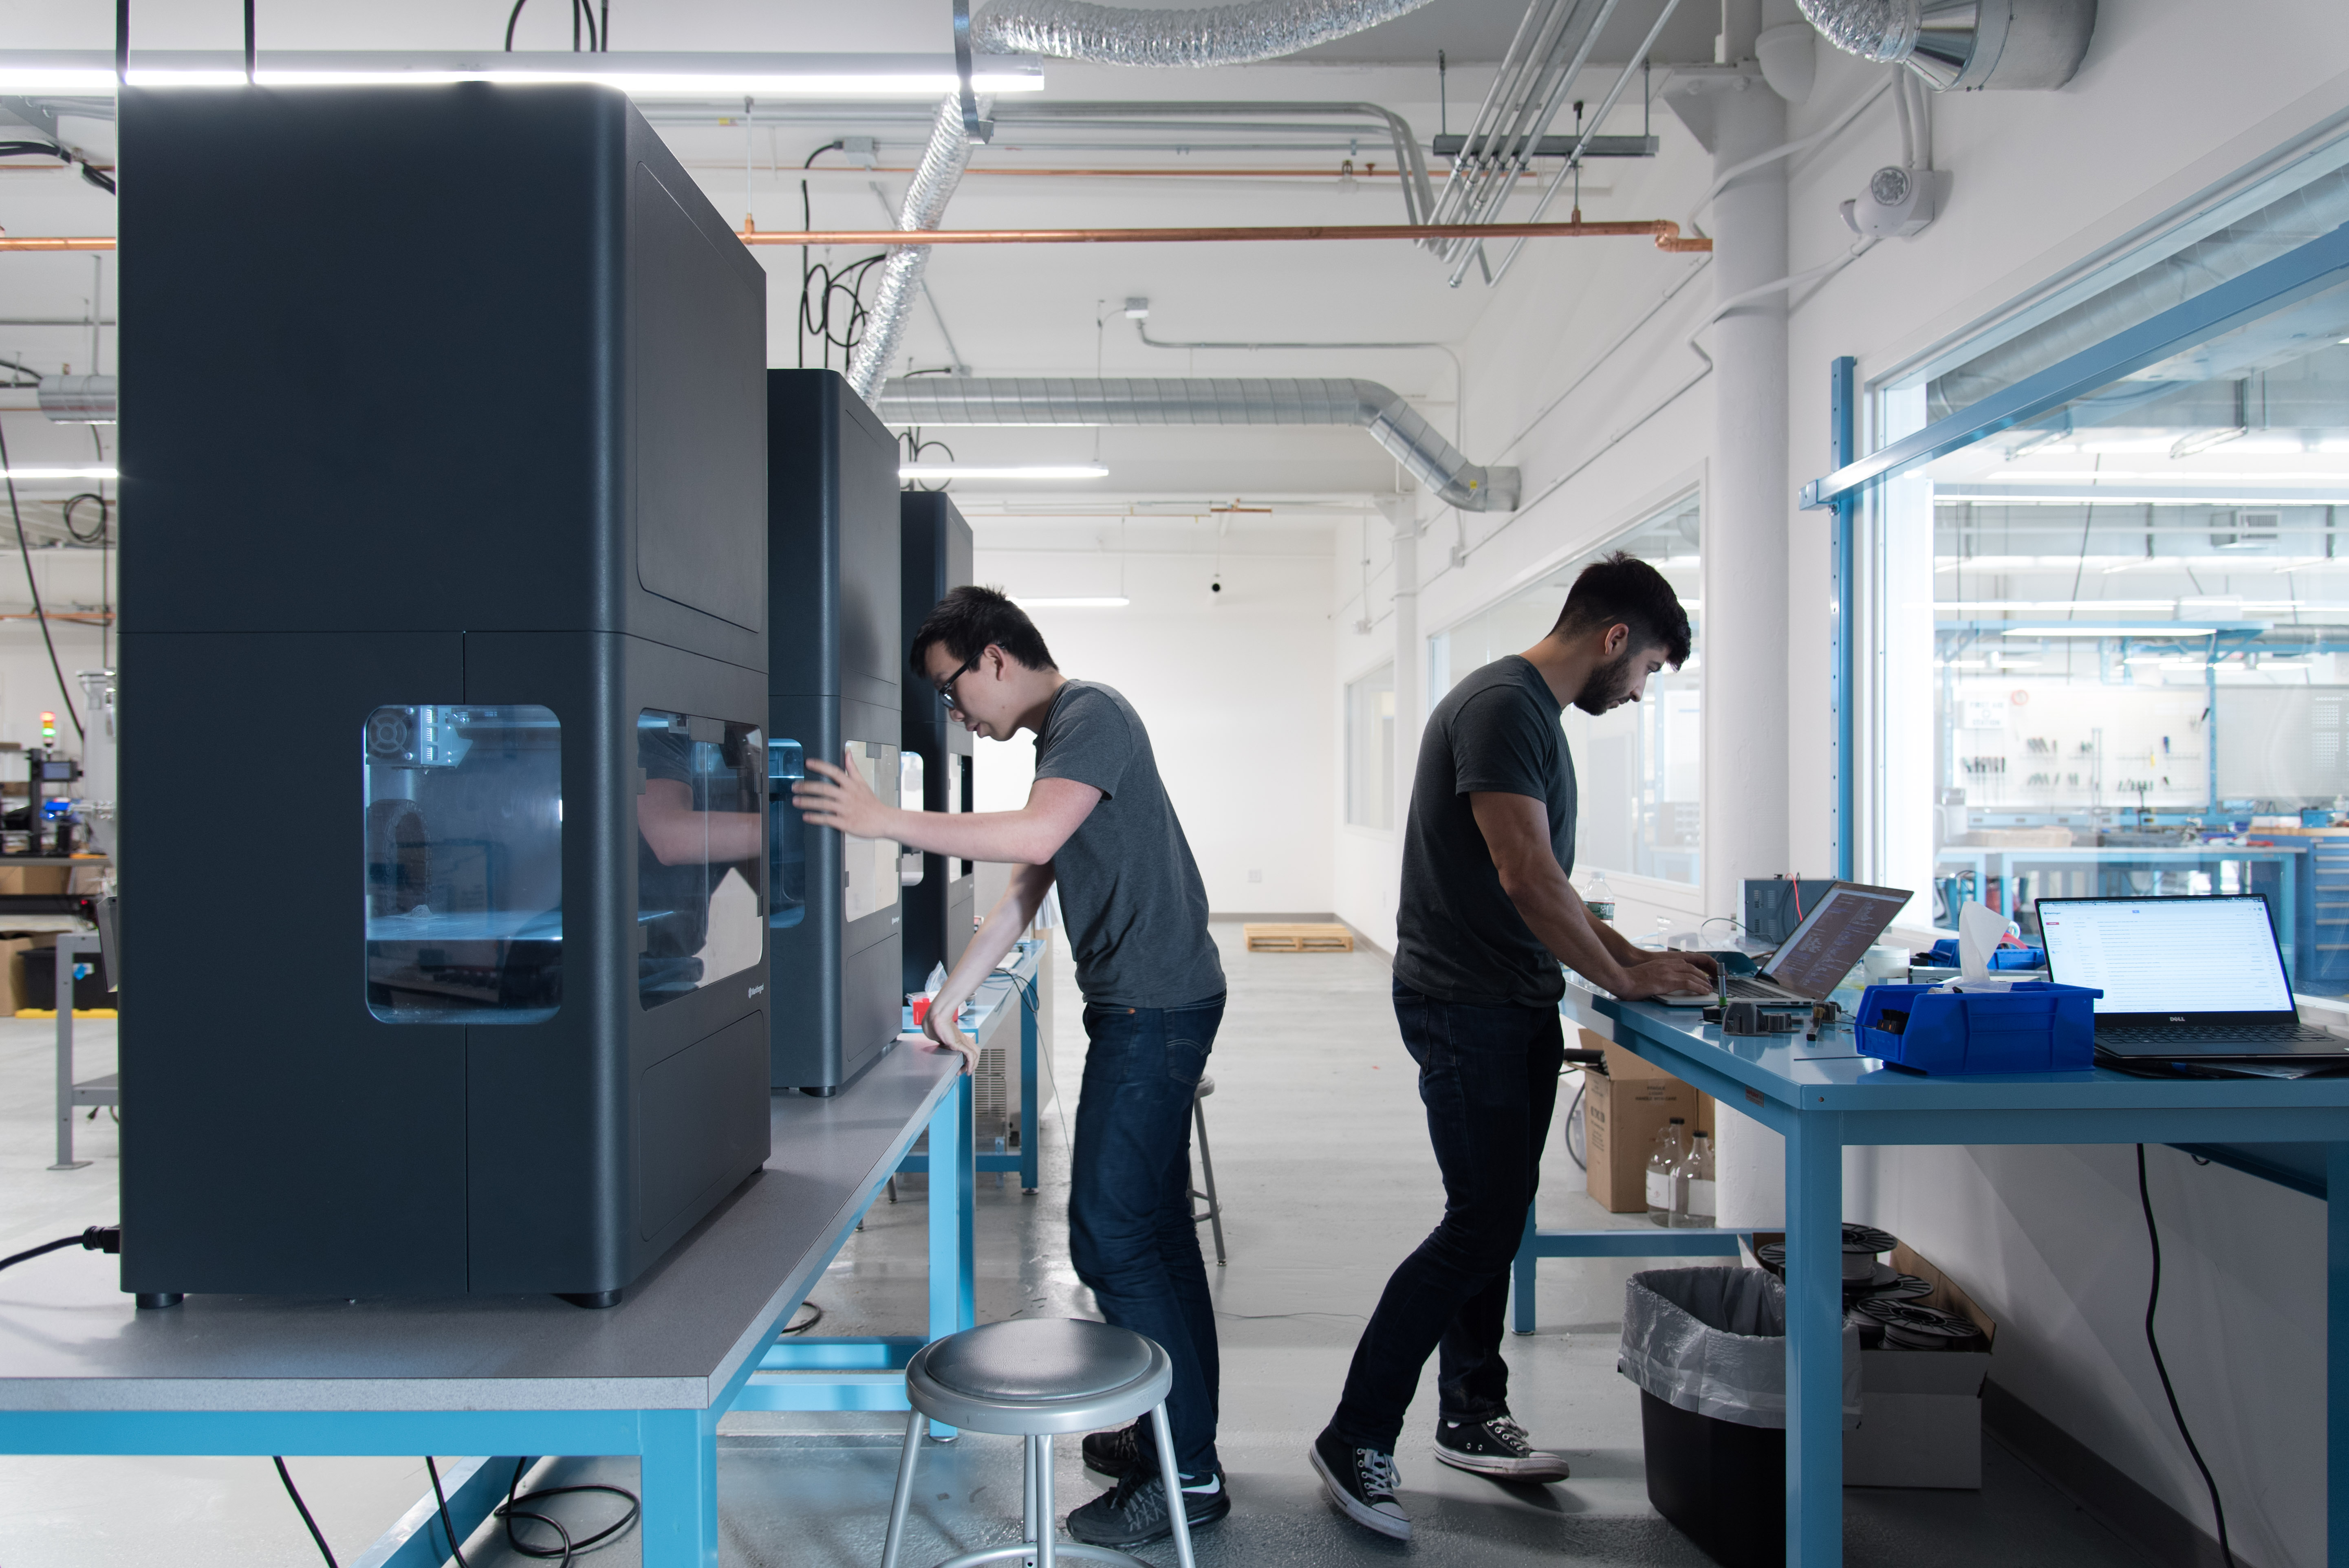 About Us: 3D Printer Manufacturer & Technology Company